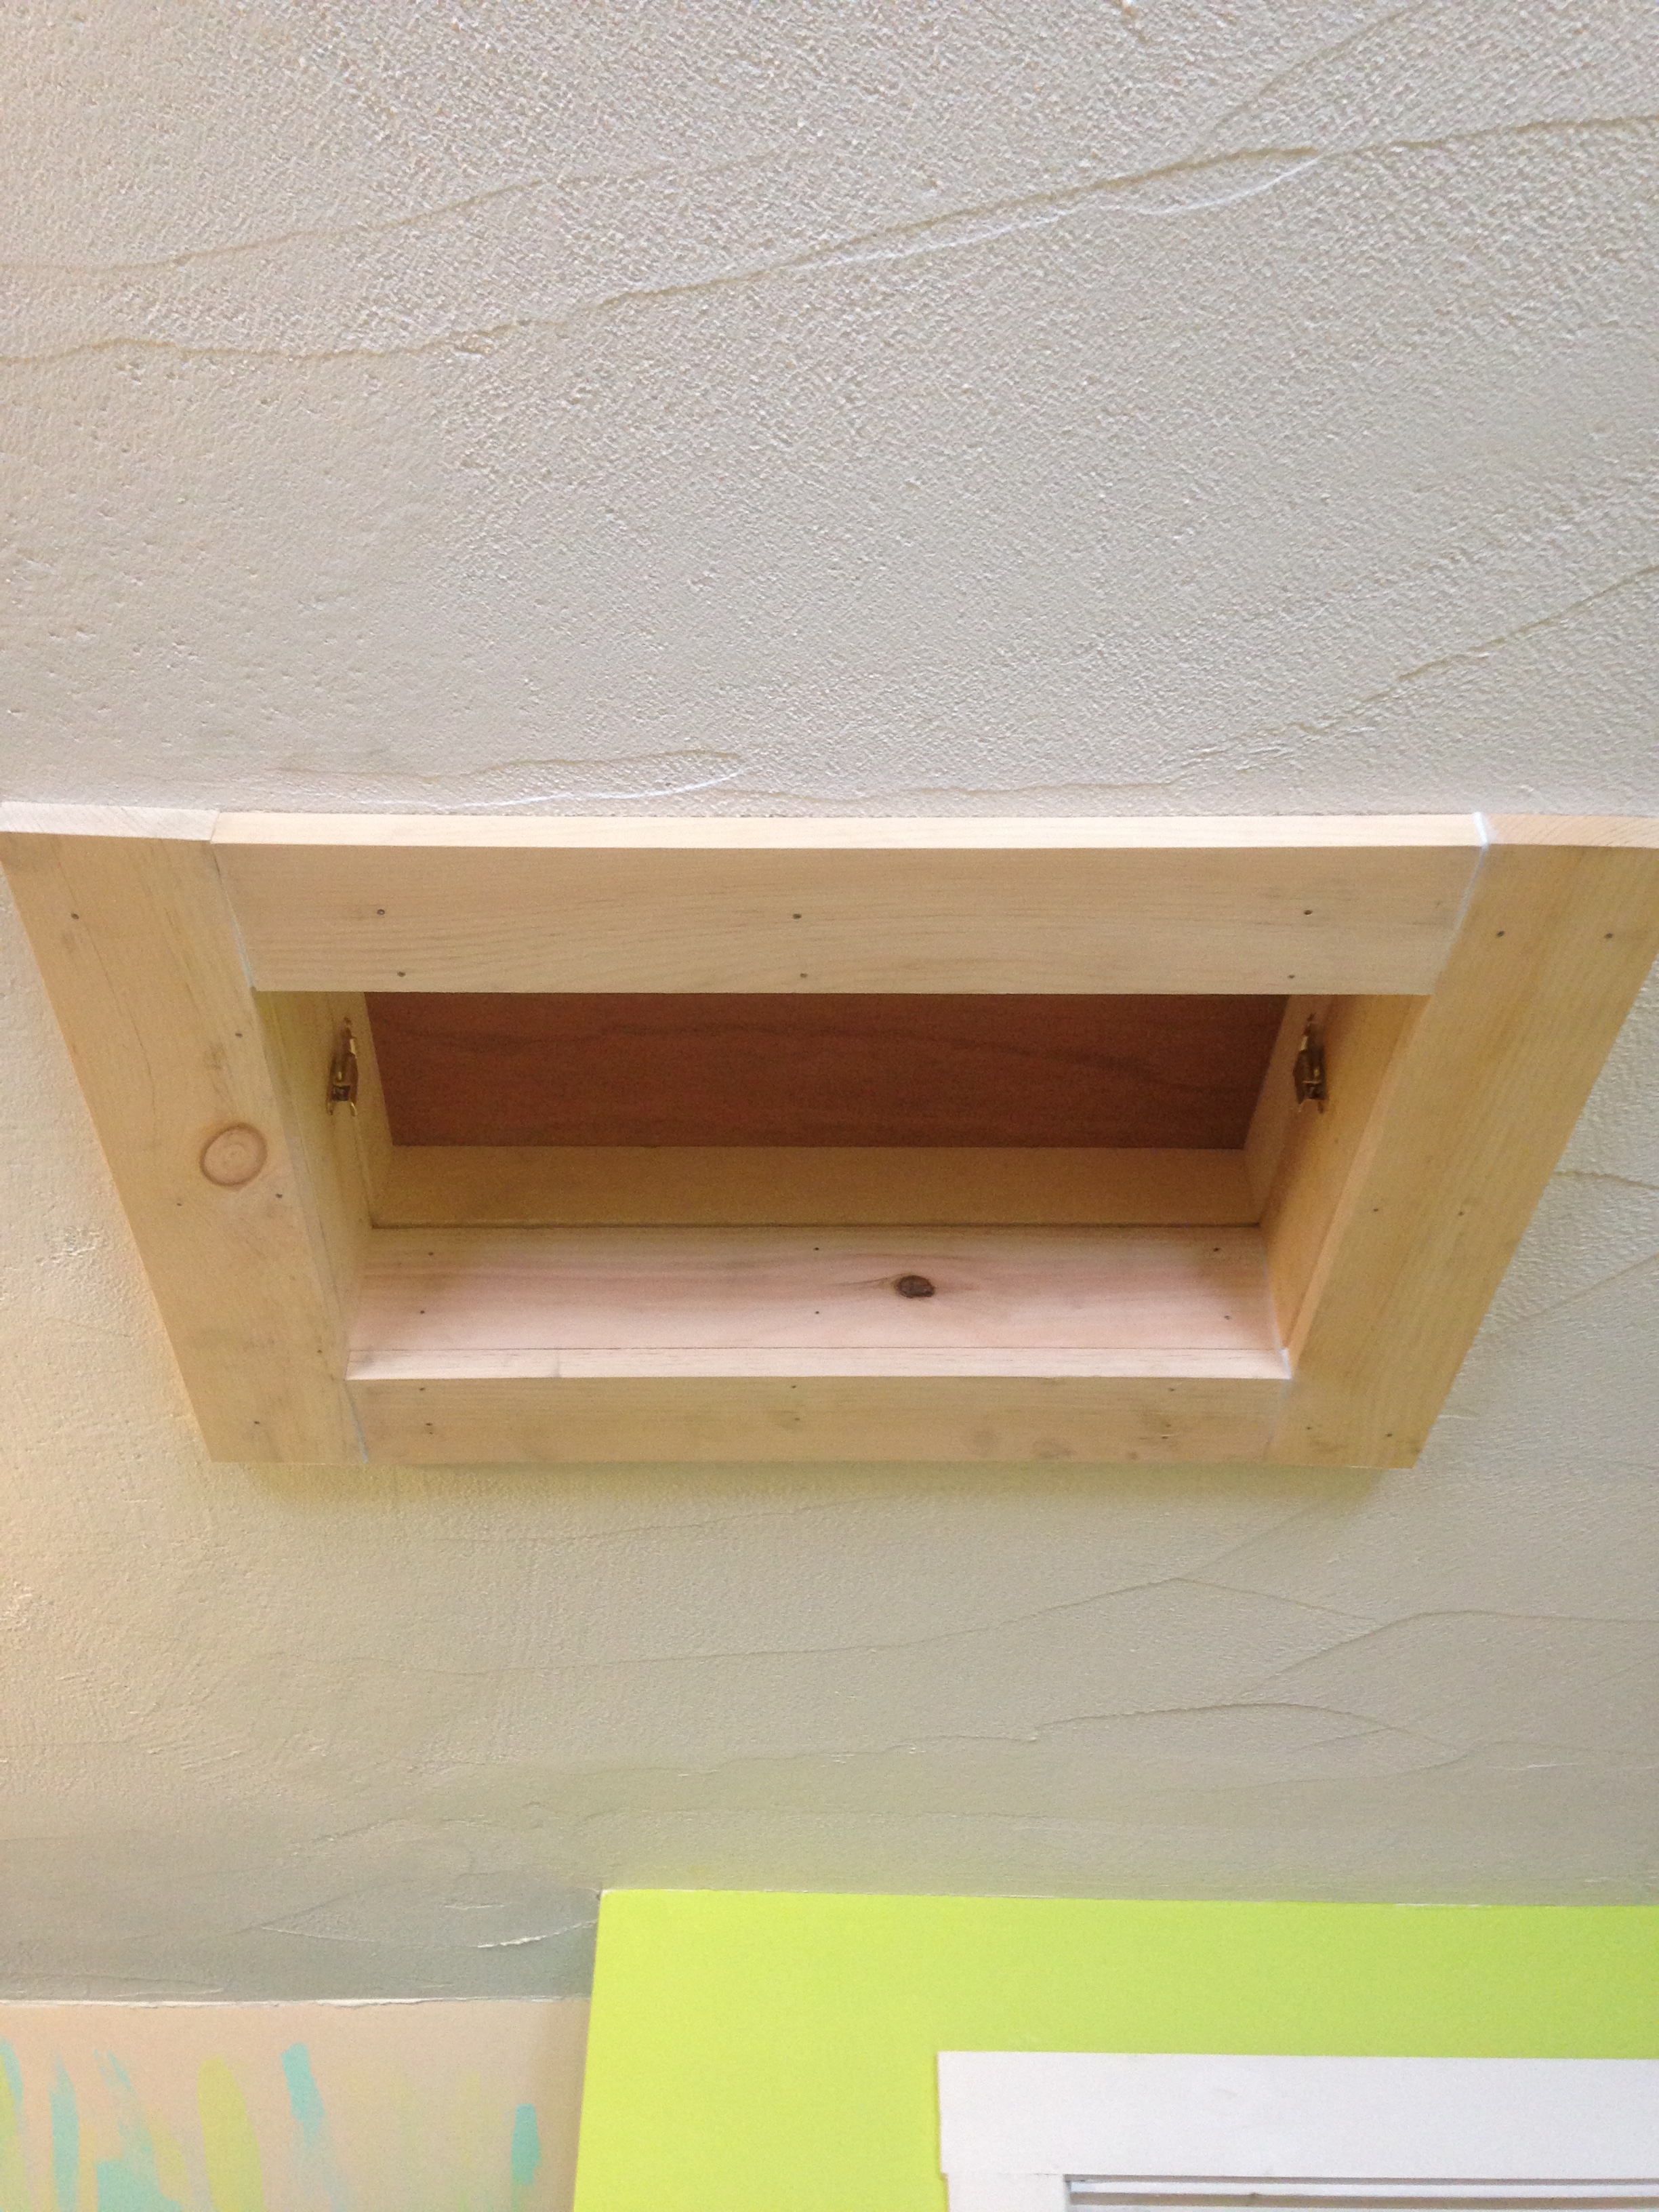 Attic Hatch Completed